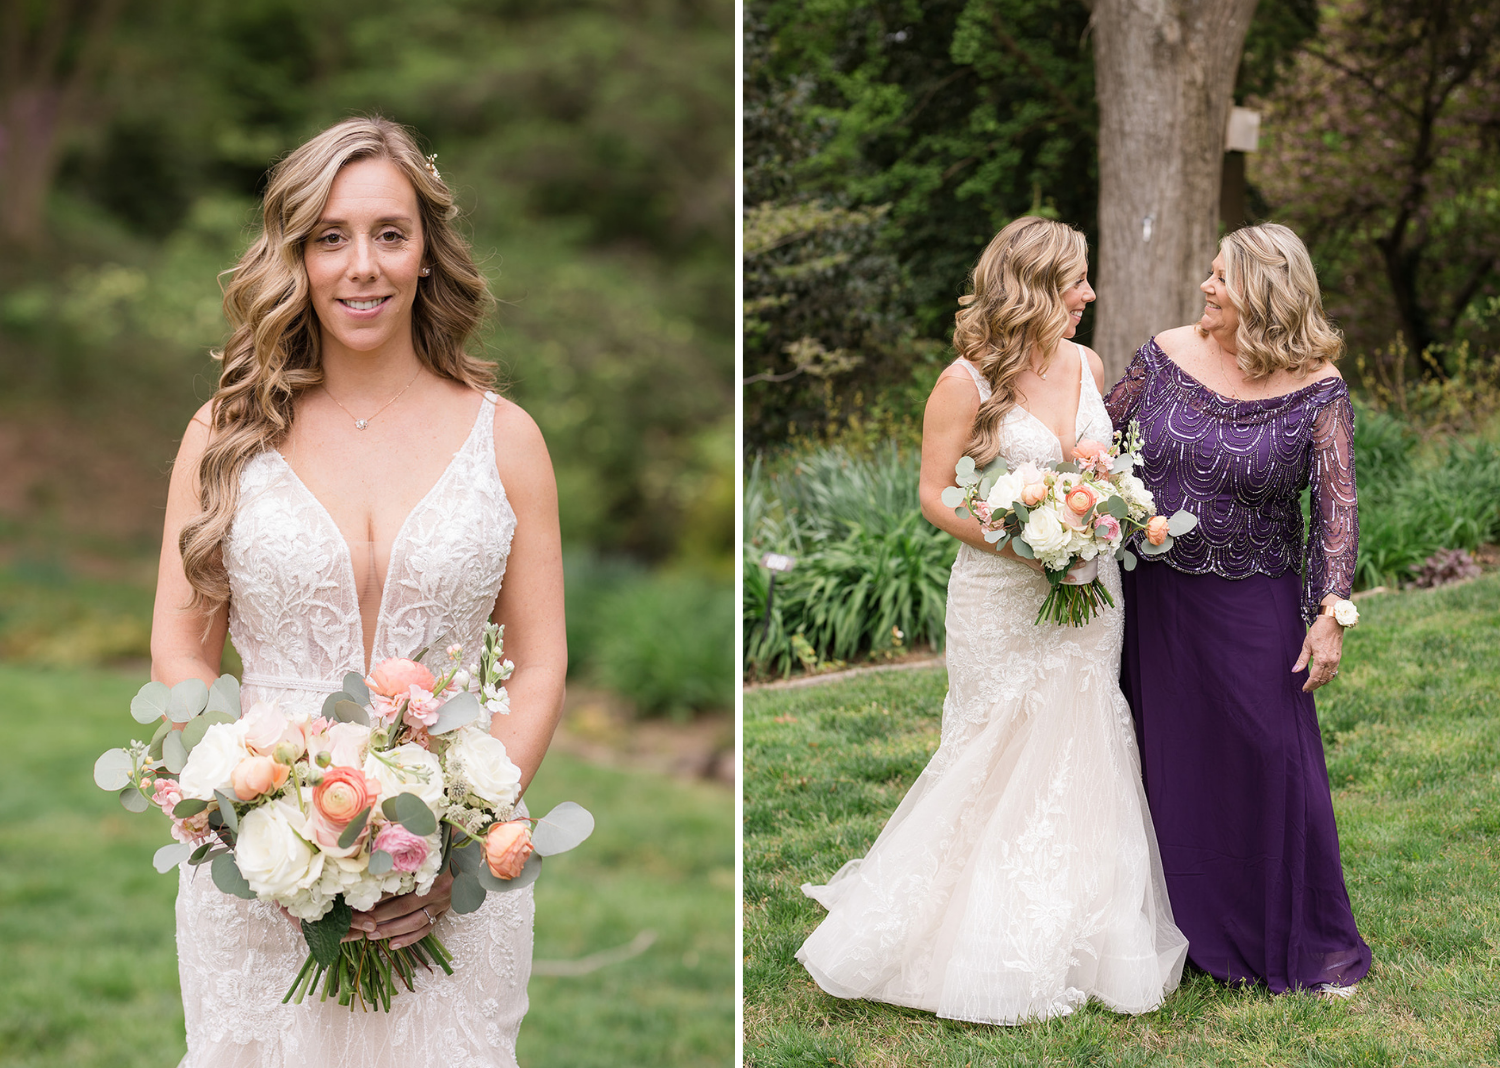 outdoor bridal portraits of the bride and the bride with her mom